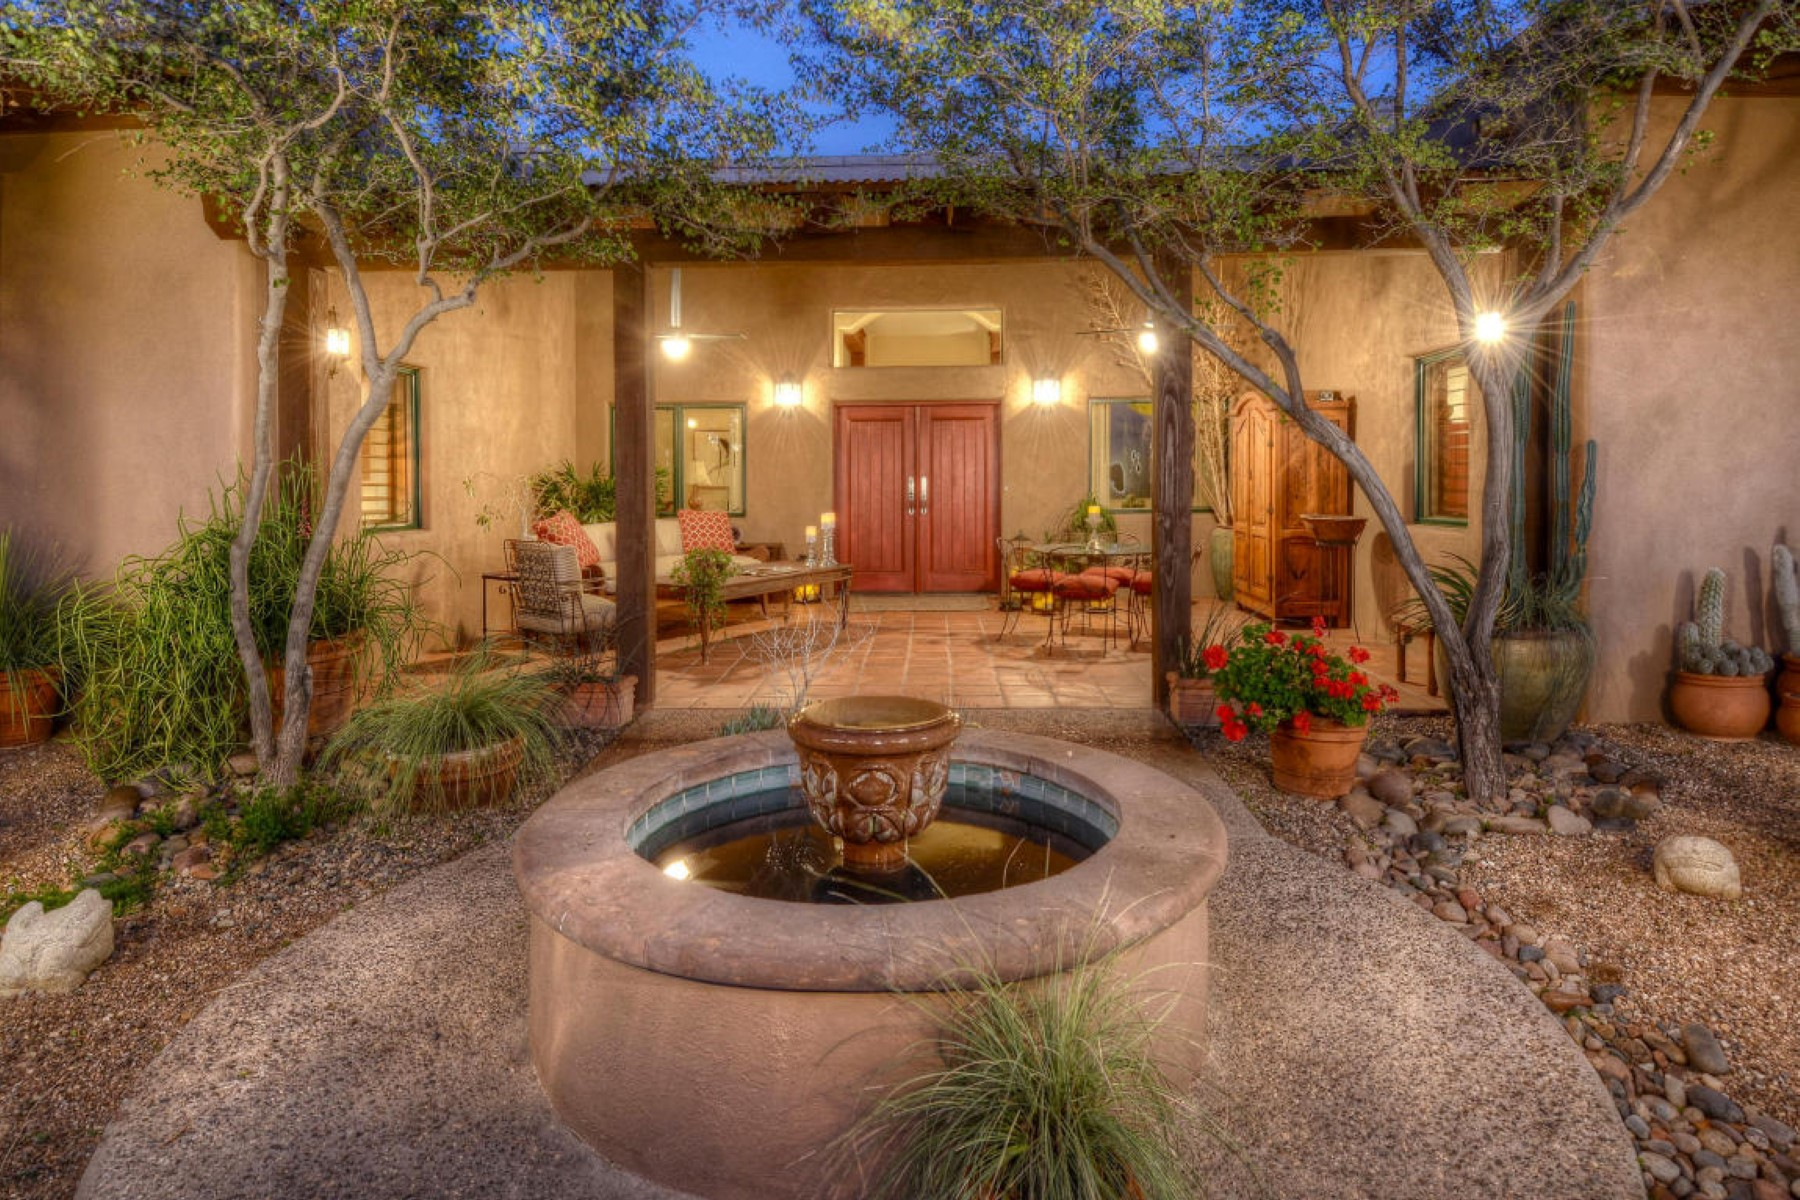 Casa Unifamiliar por un Venta en Exquisite Hacienda Ranch secluded 10 acre retreat 13450 N Teal Blue Trail Tucson, Arizona, 85742 Estados Unidos